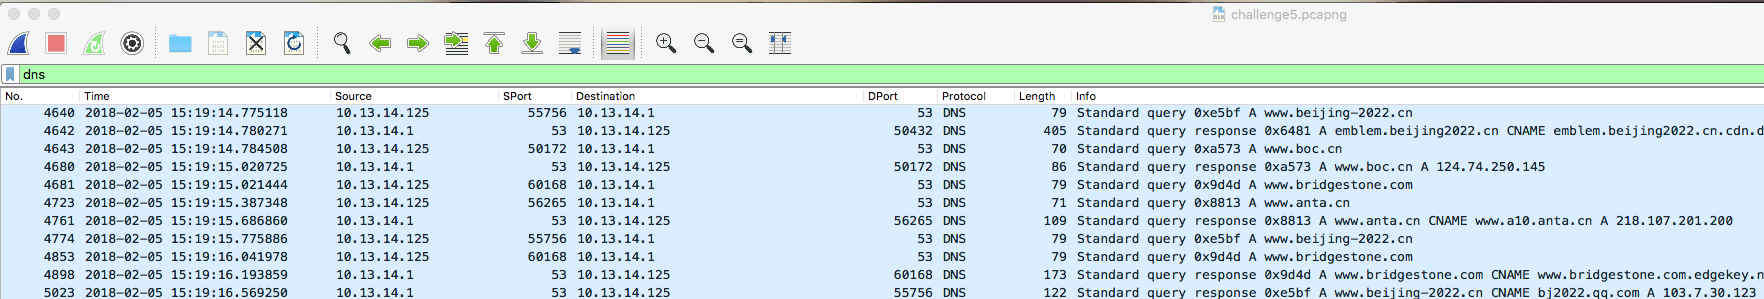 wireshark pcap analysis puzzle 5 dns analysis 4 of 4